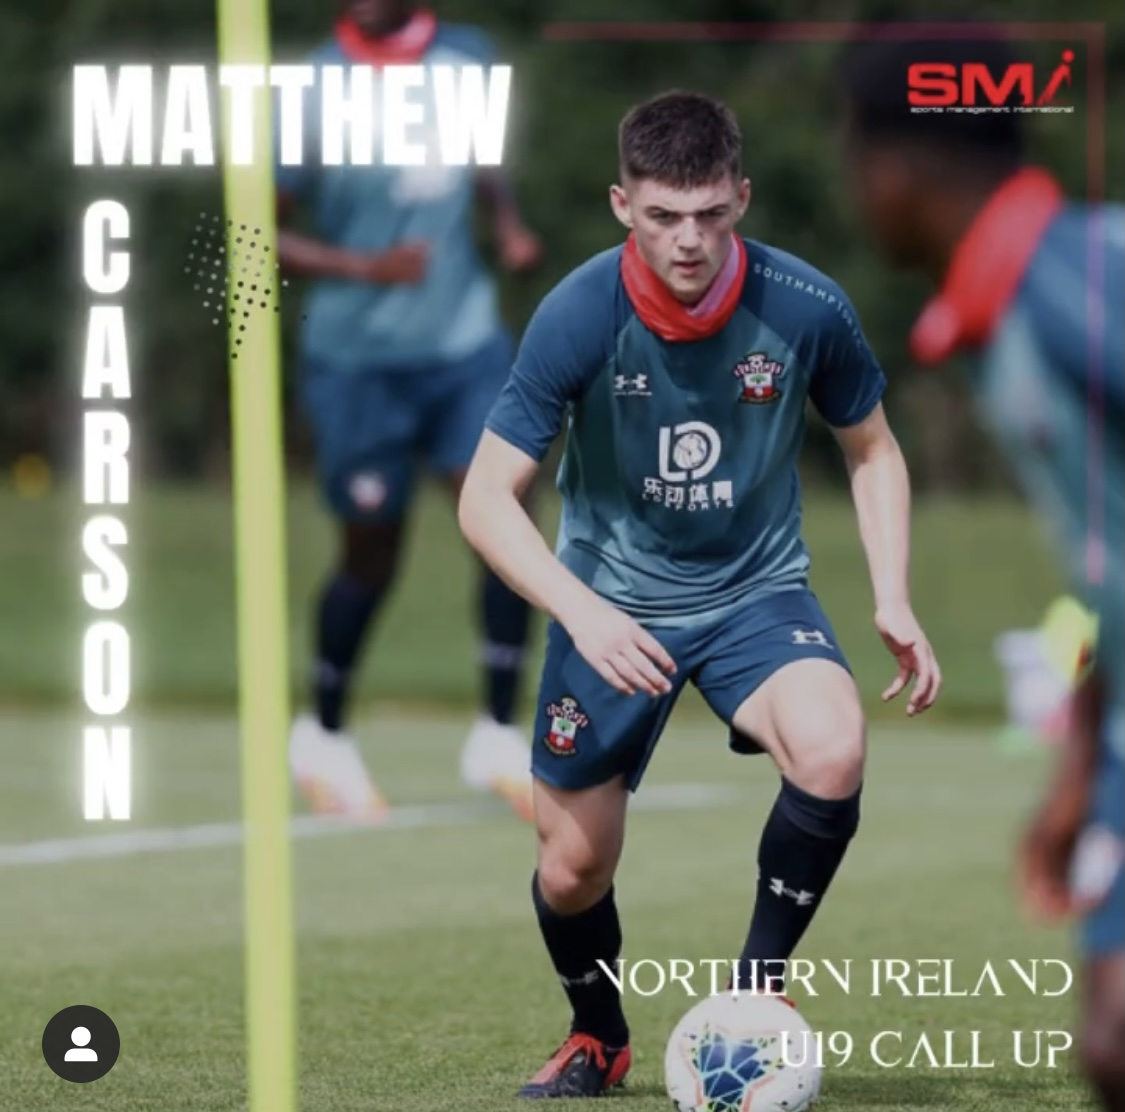 Matthew Carson Northern Ireland u19 call up